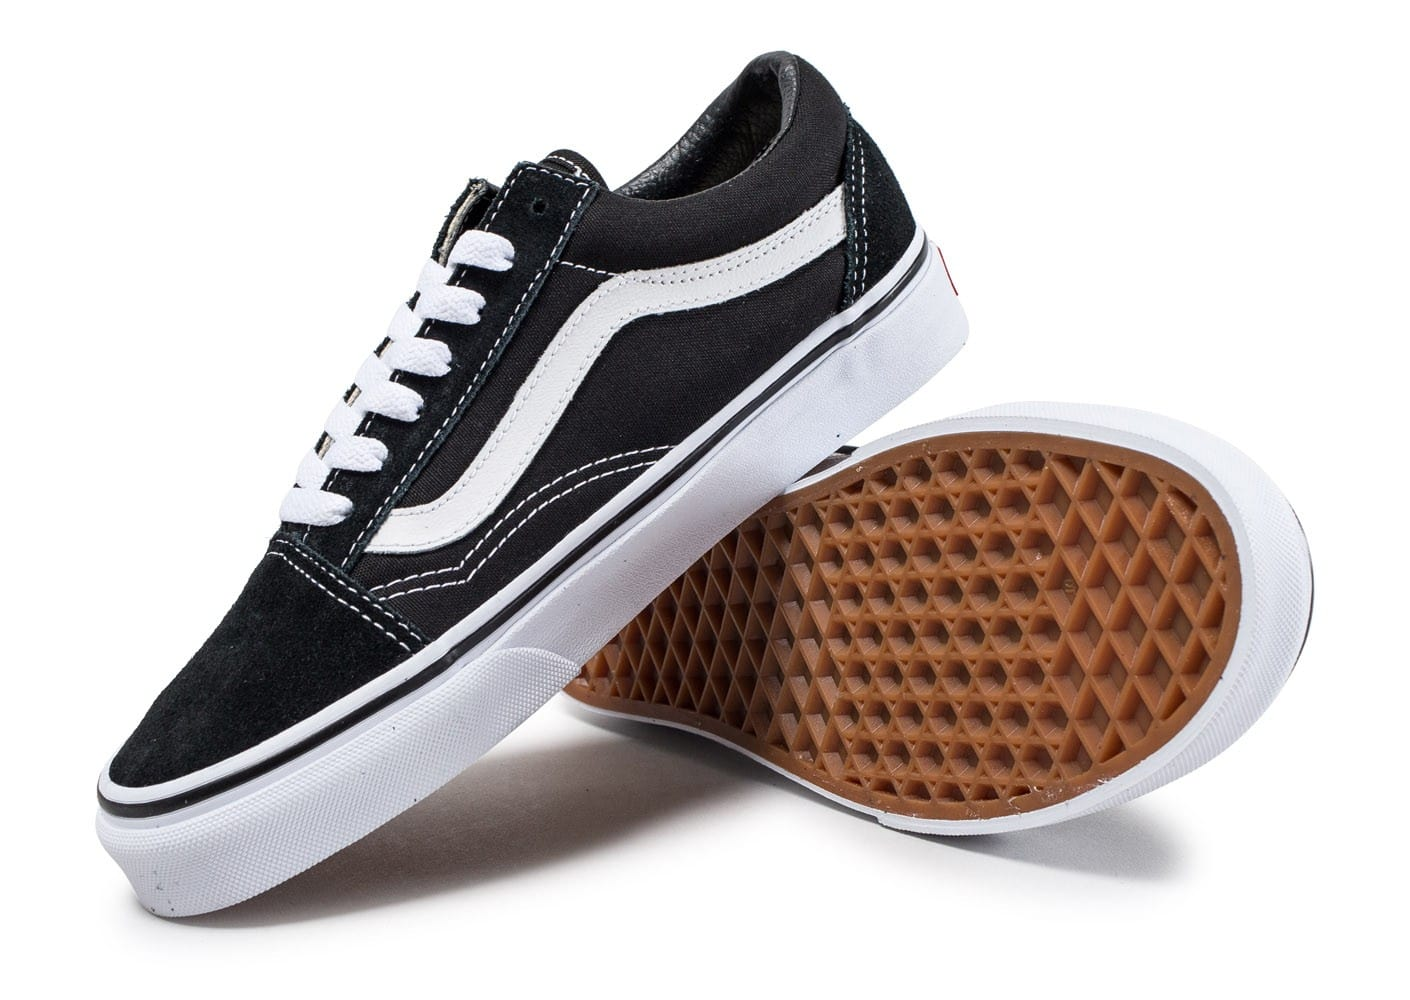 vans old skool low noire et blanche chaussures baskets femme chausport. Black Bedroom Furniture Sets. Home Design Ideas